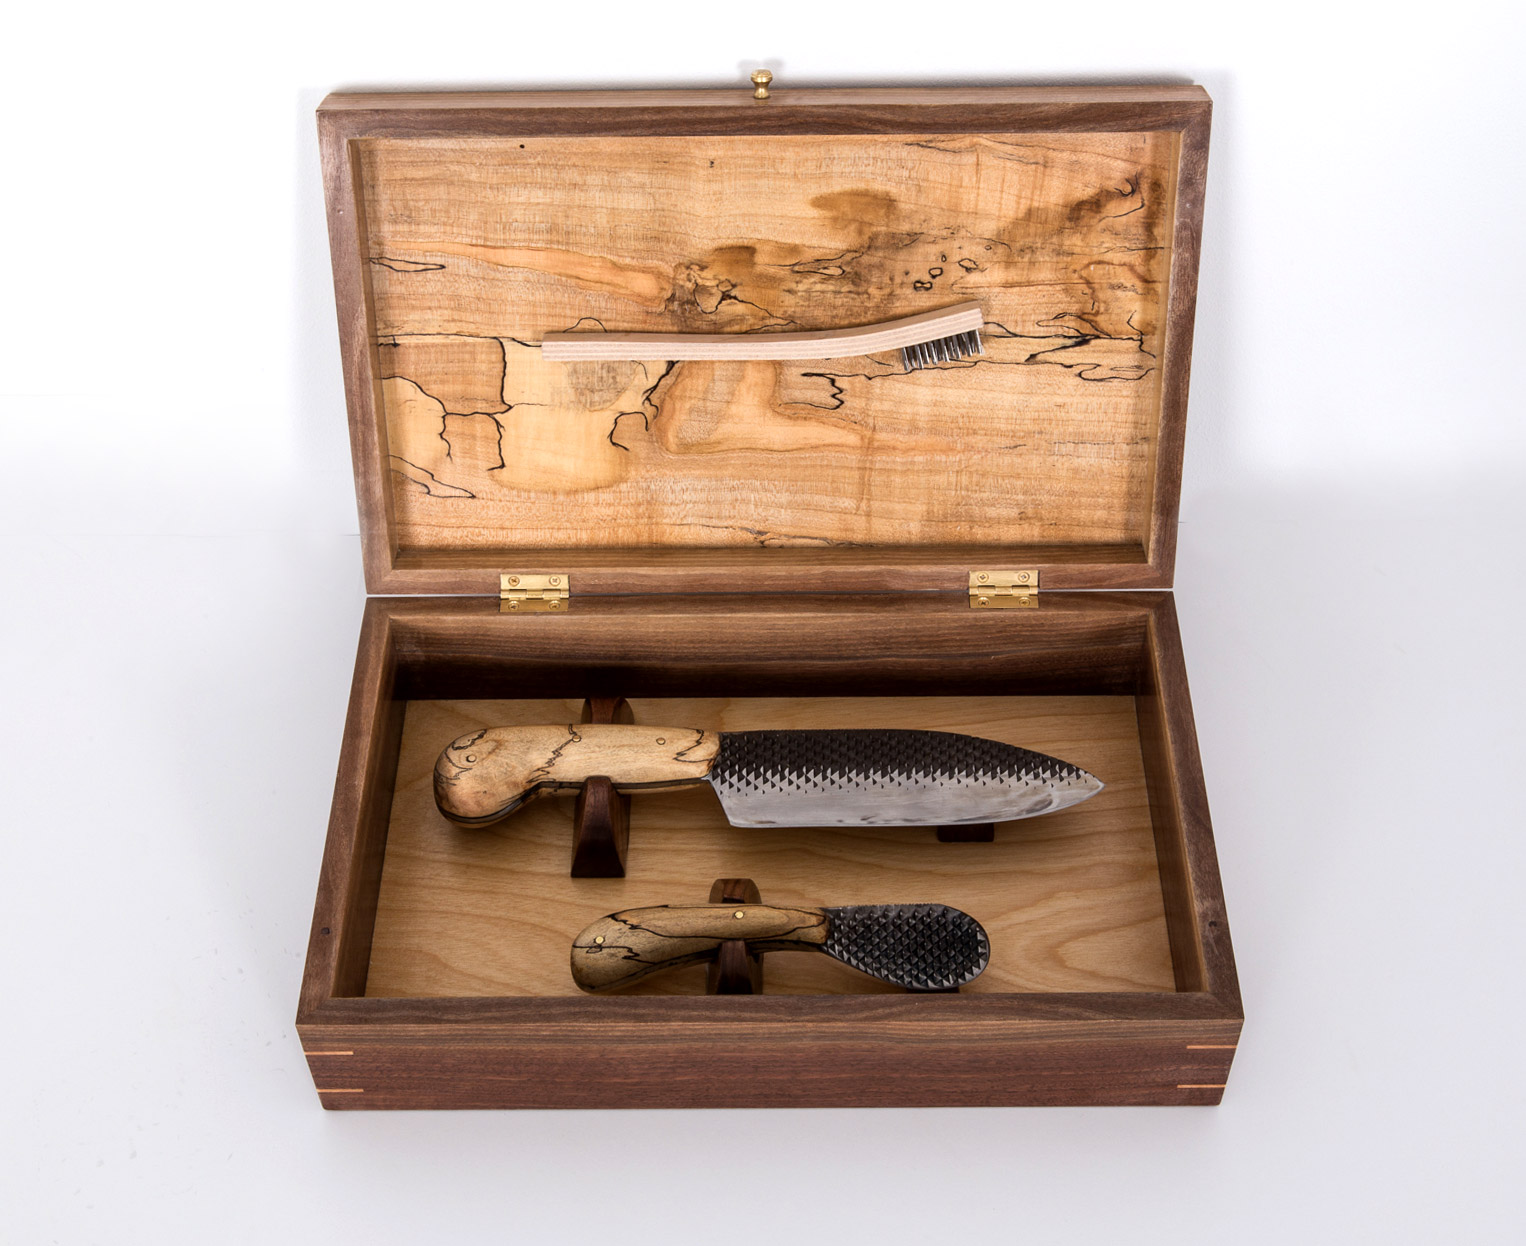 Knife-box-1-EDIT.jpg